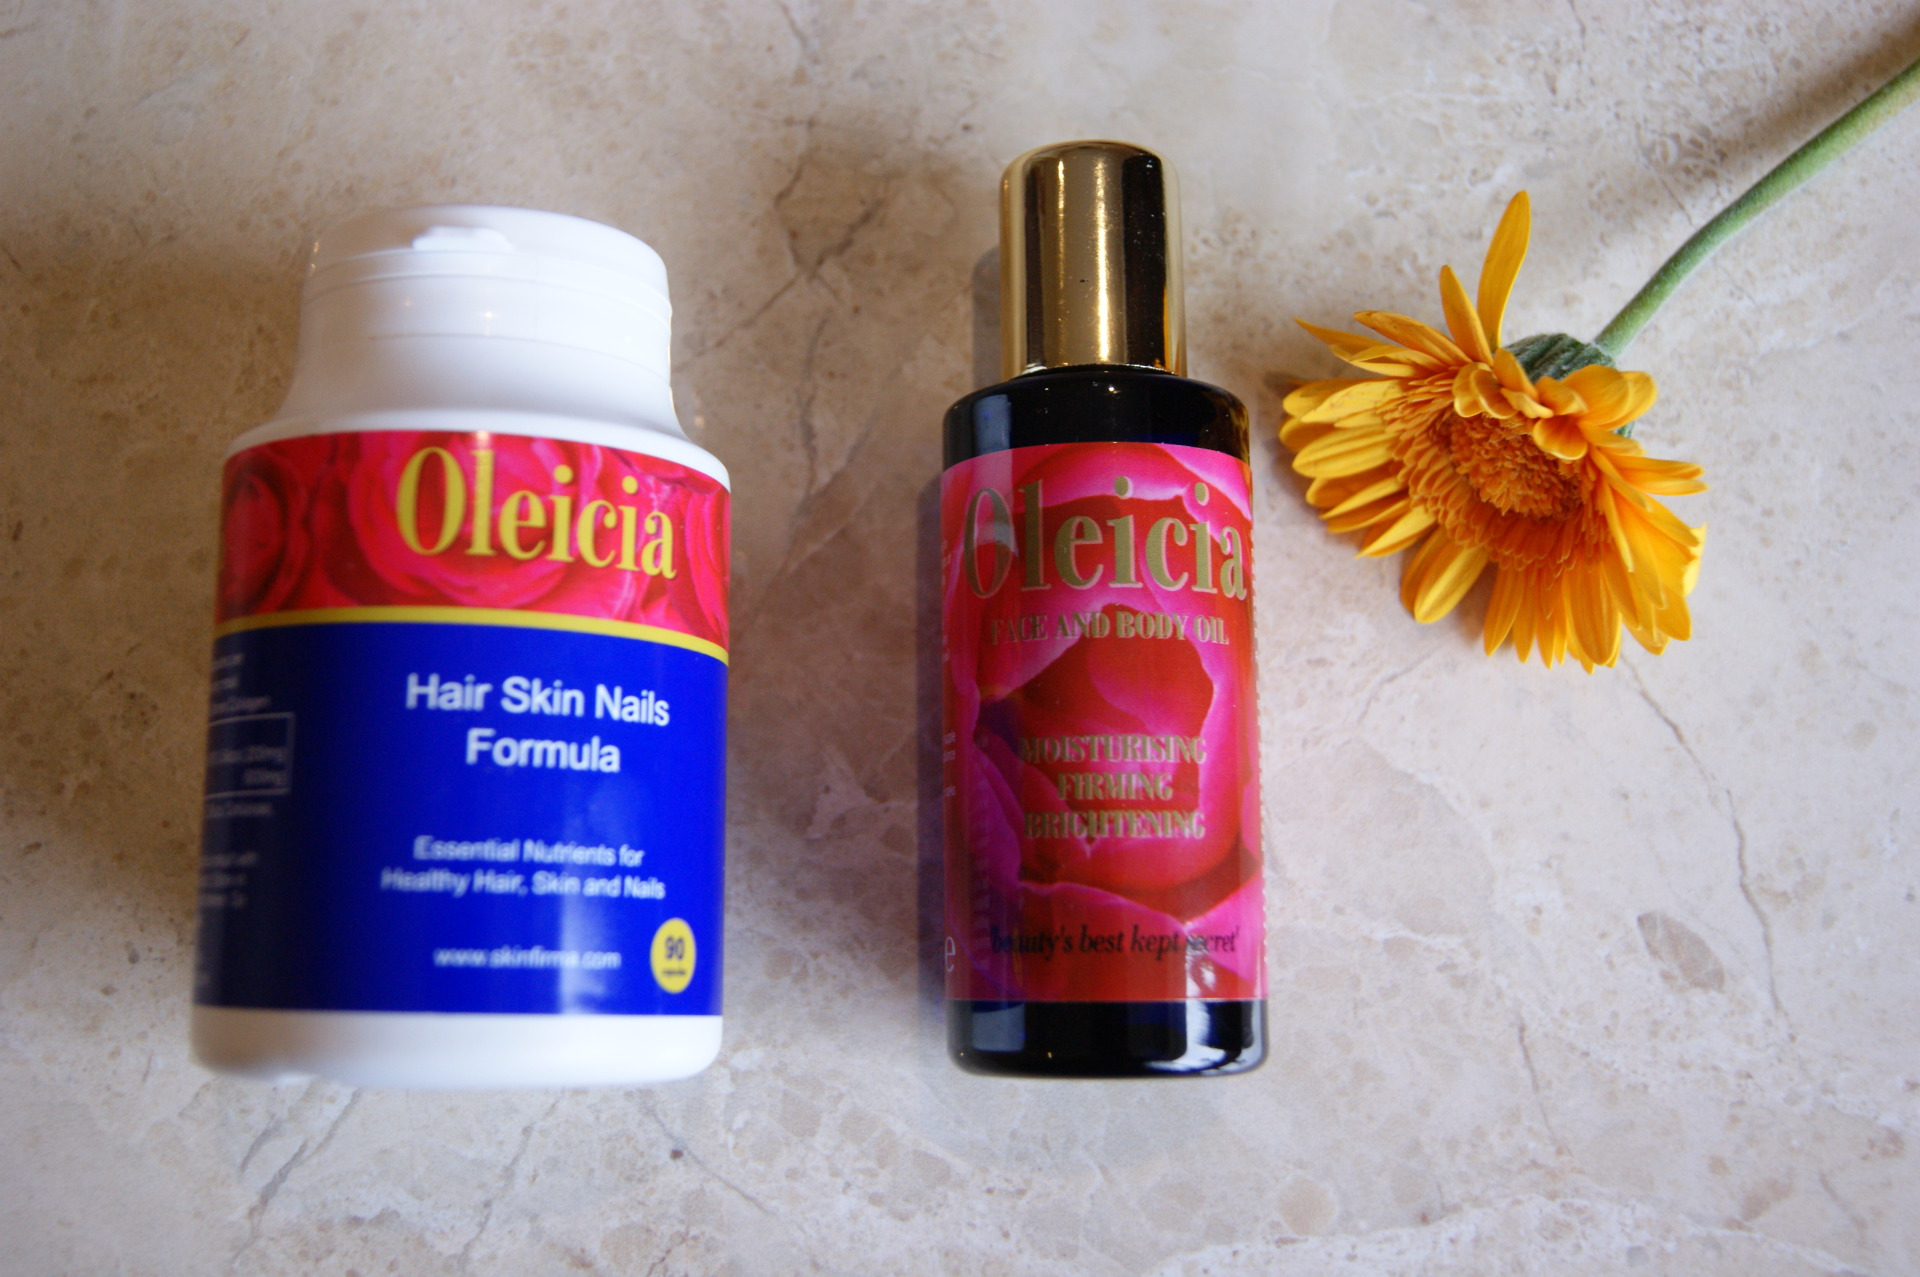 Skin Firma - Oleicia beauty review